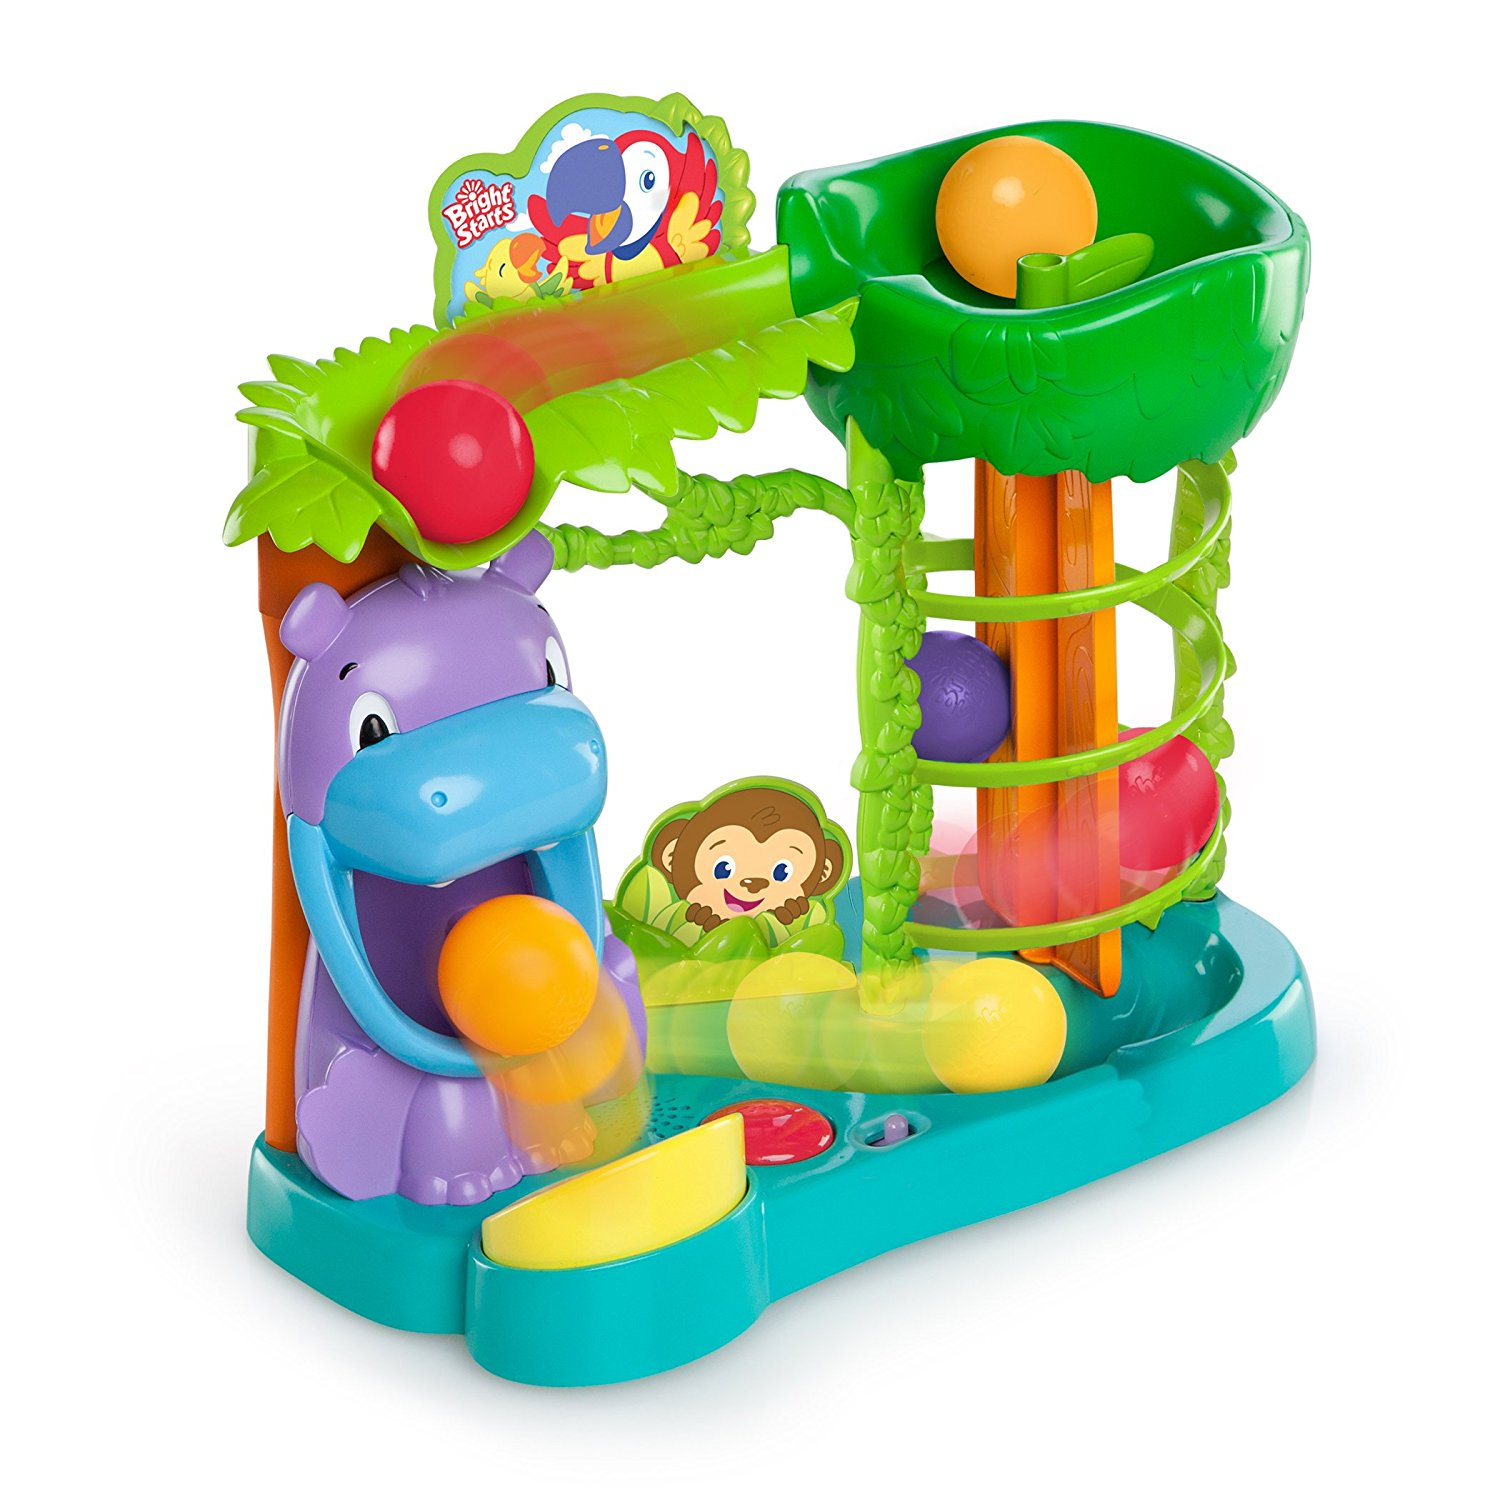 Bright Starts Having A Ball Jungle Fun Ball Climber Review Kids